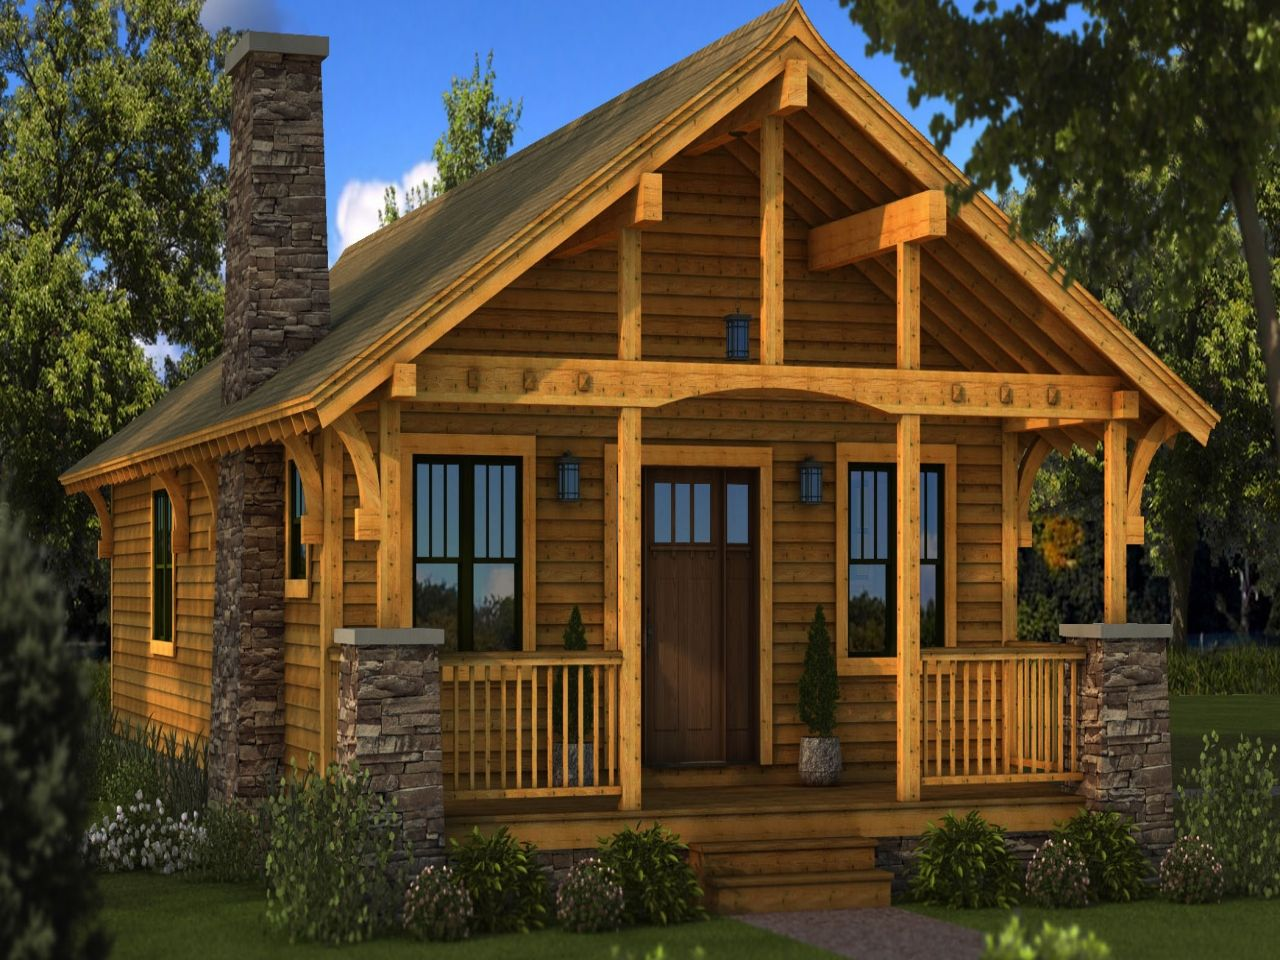 Small log cabin homes plans one story cabin plans for Small lodge plans